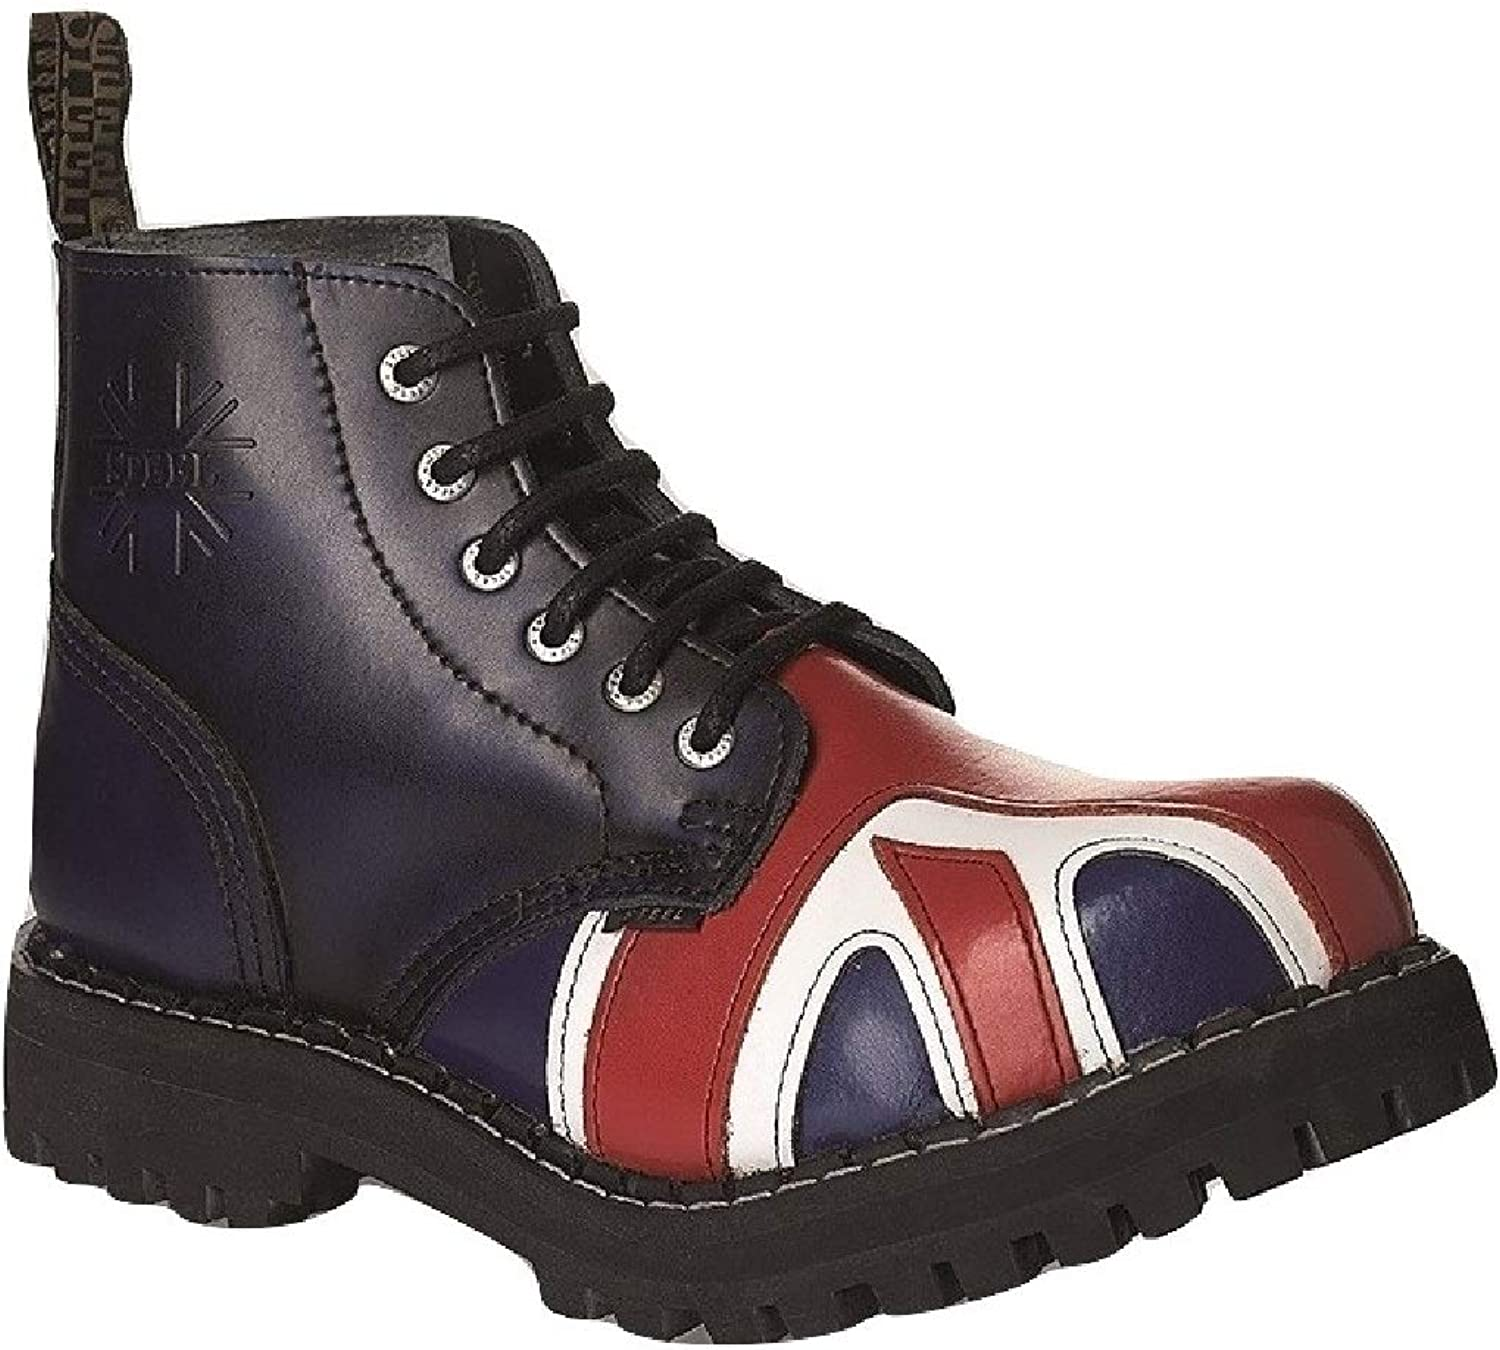 Steel Combat Boots Unisex Men's Ladies Leather bluee Rub Off Union Jack Flag 6 Eyelets Army Punk Toe Cap